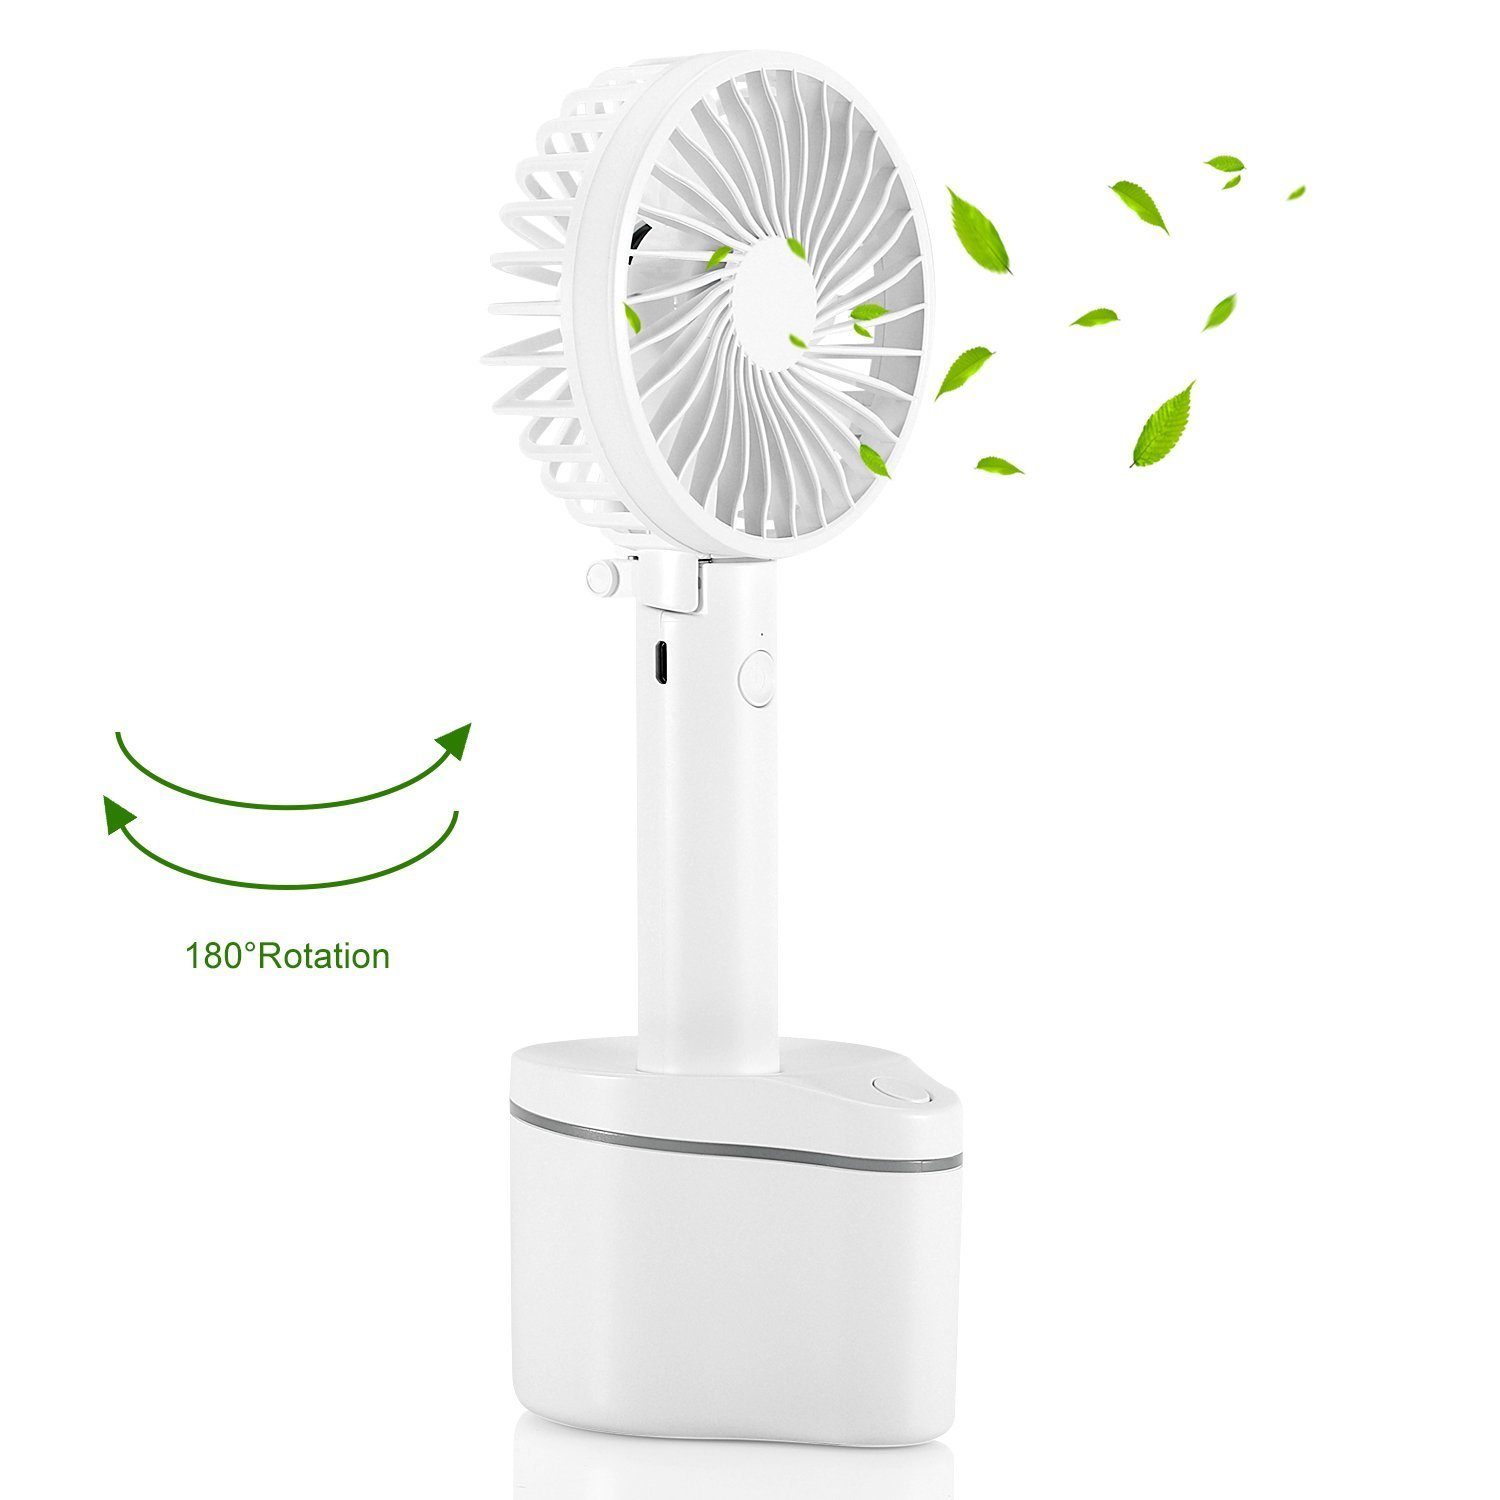 Mini USB Fan, SENDOW Portable Rotating Fan 180 Degree Rotation 2600mAh Capacity Rechargeable Personal Handheld Fan with 5 Speeds for Home, Office, Outdoor, Traveling (White)